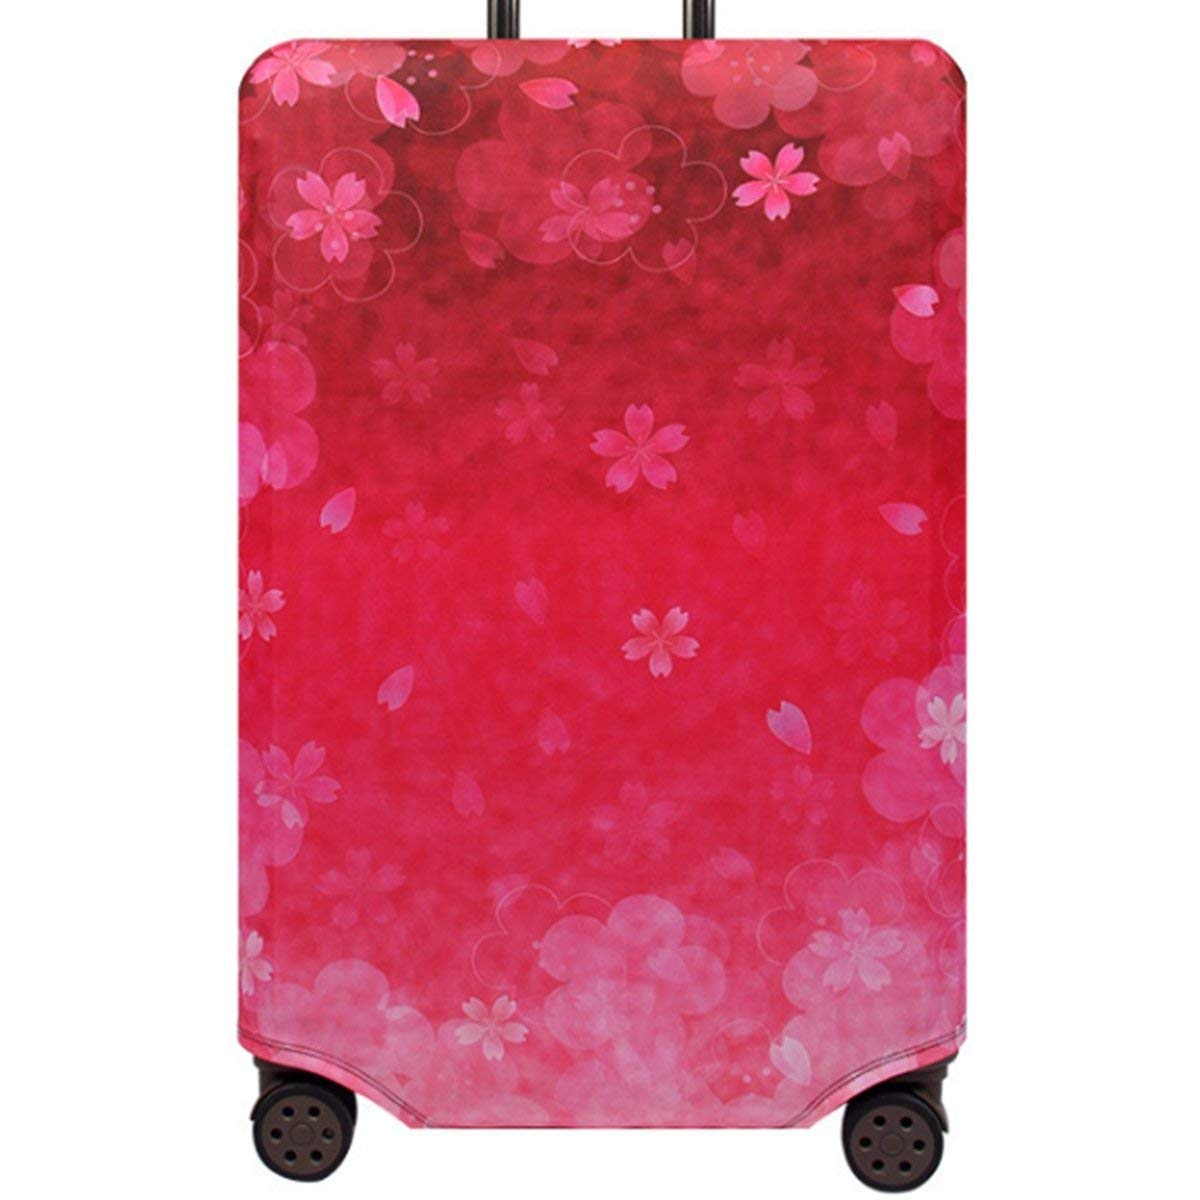 18-32 Inches Washable Travel Luggage Cover Suitcase Dust Cover Trolley Case Protective Cover